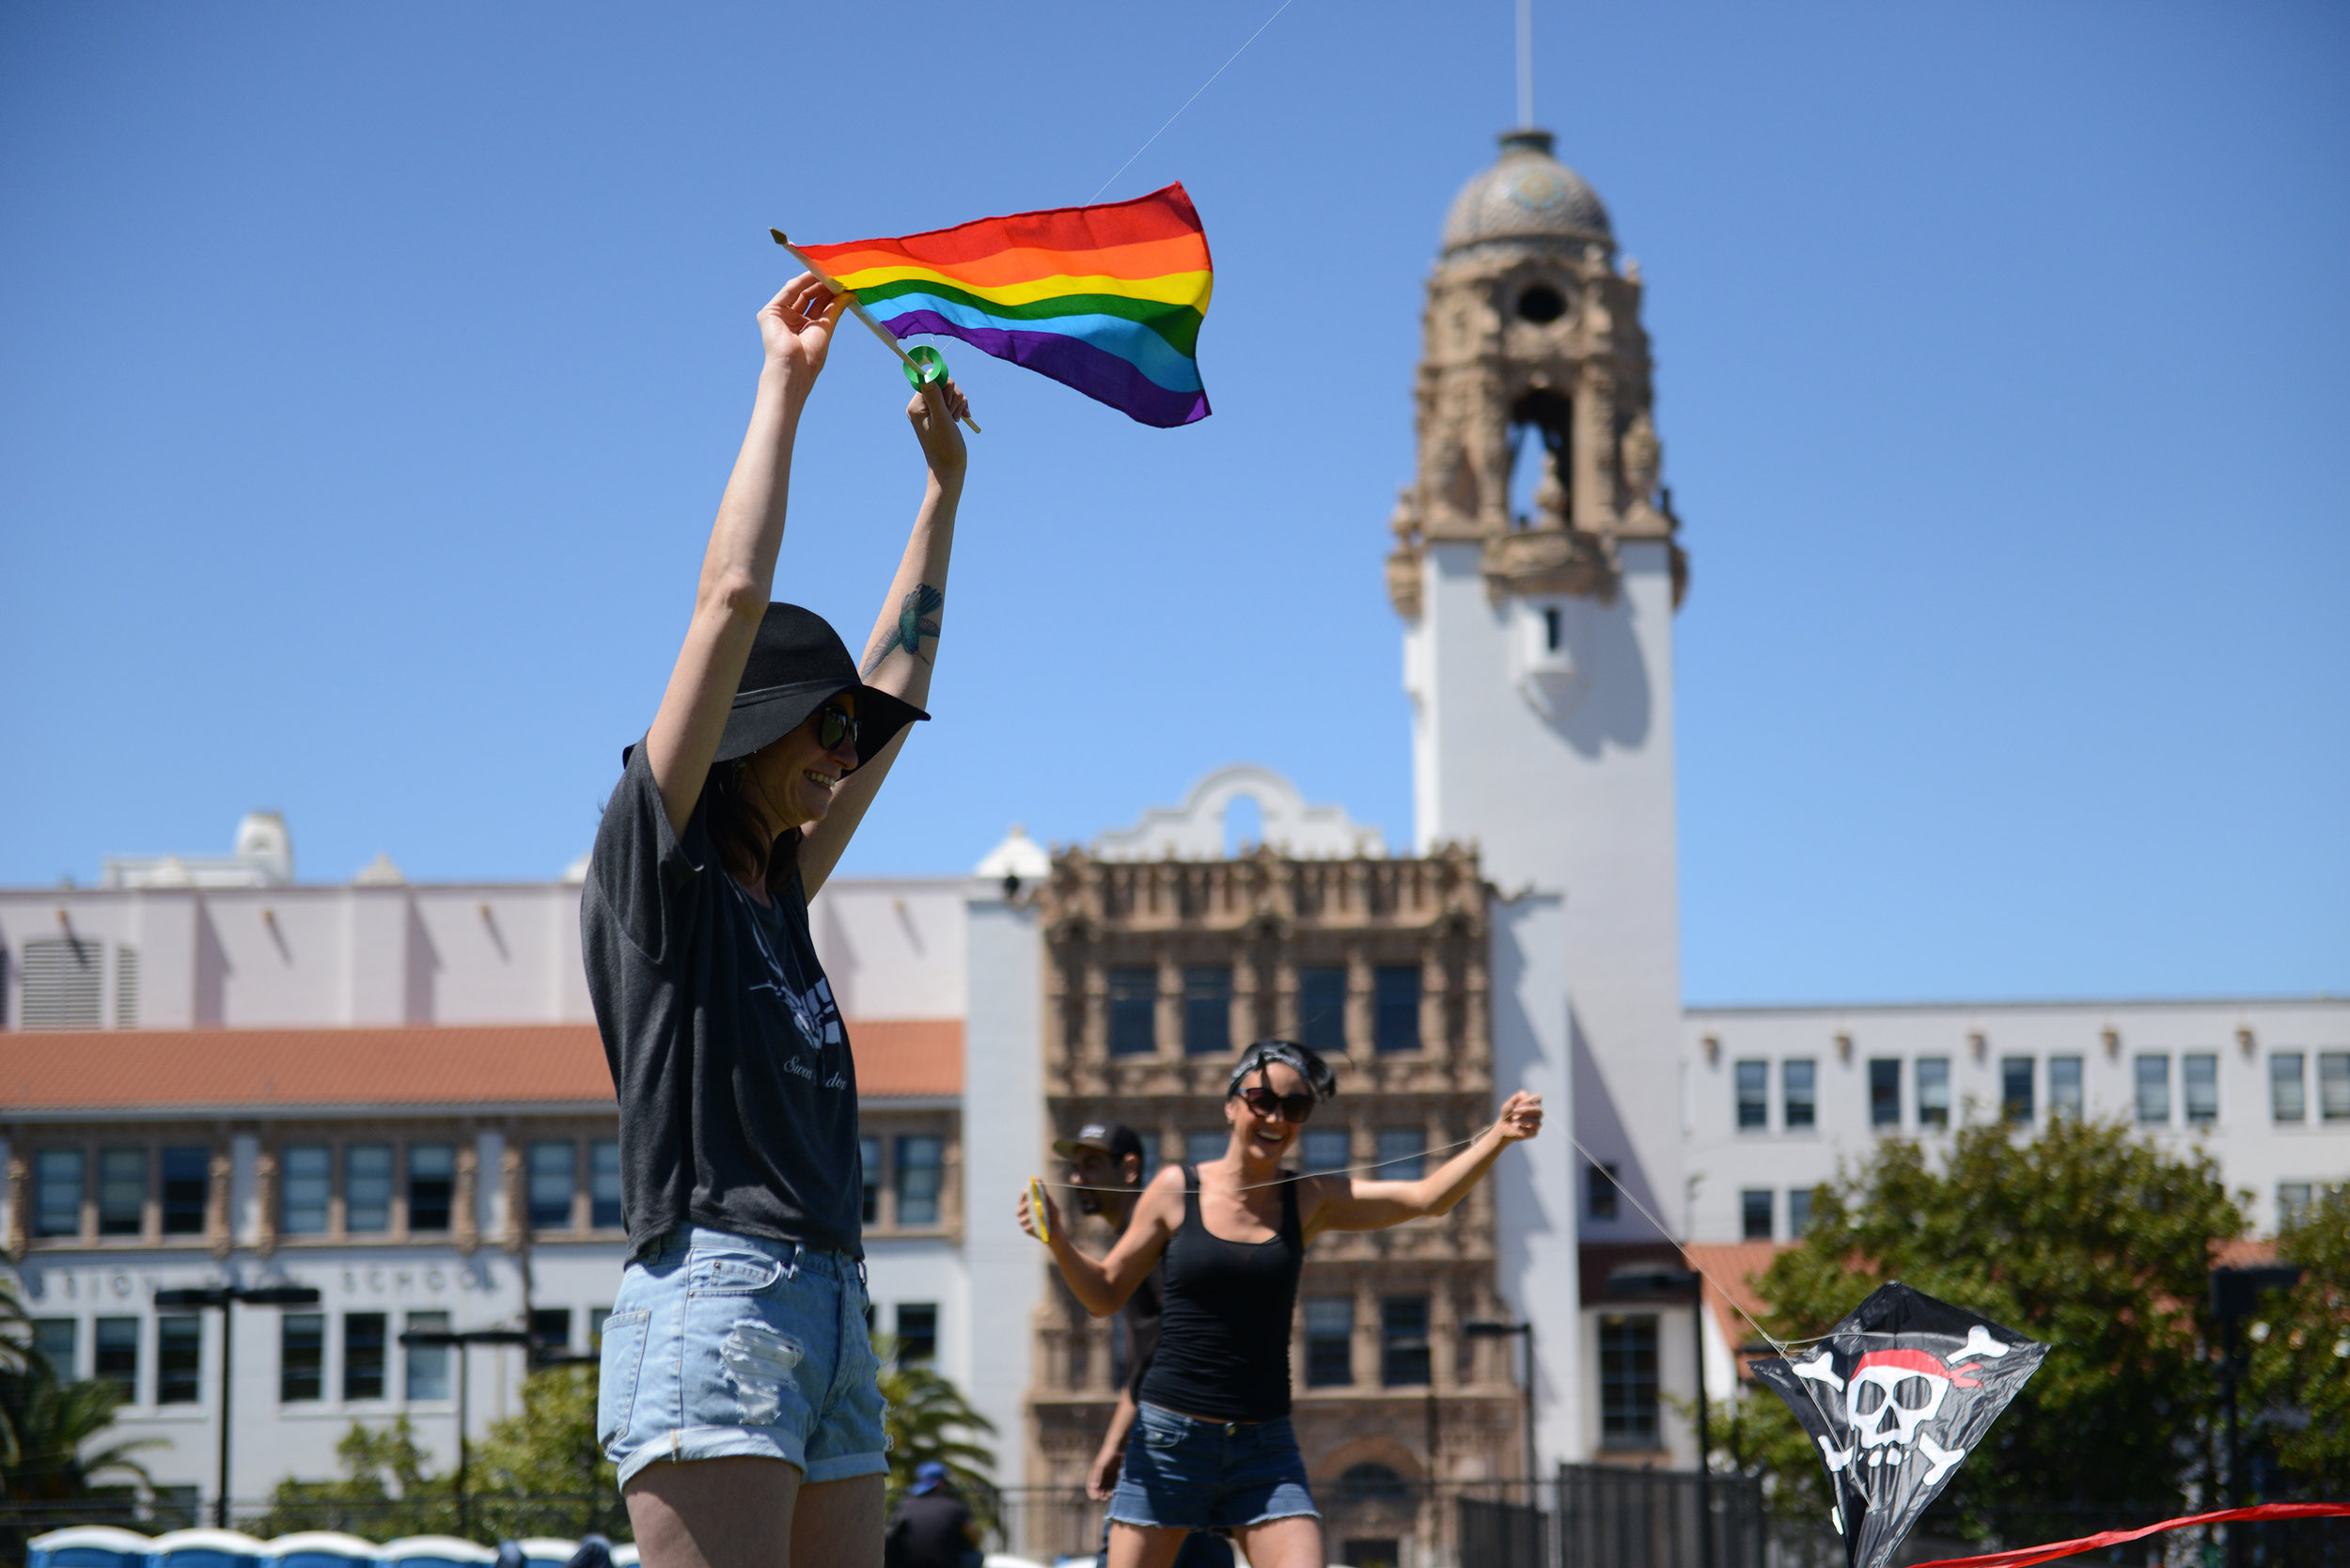 Krystal Barovetto, left, and her sister Dariann fly kites in front of Mission High School at Dolores Park in San Francisco, Ca. Krystal said they bought and were flying the rainbow flag in memory of a friend who recently passed. Photo by David Andrews.